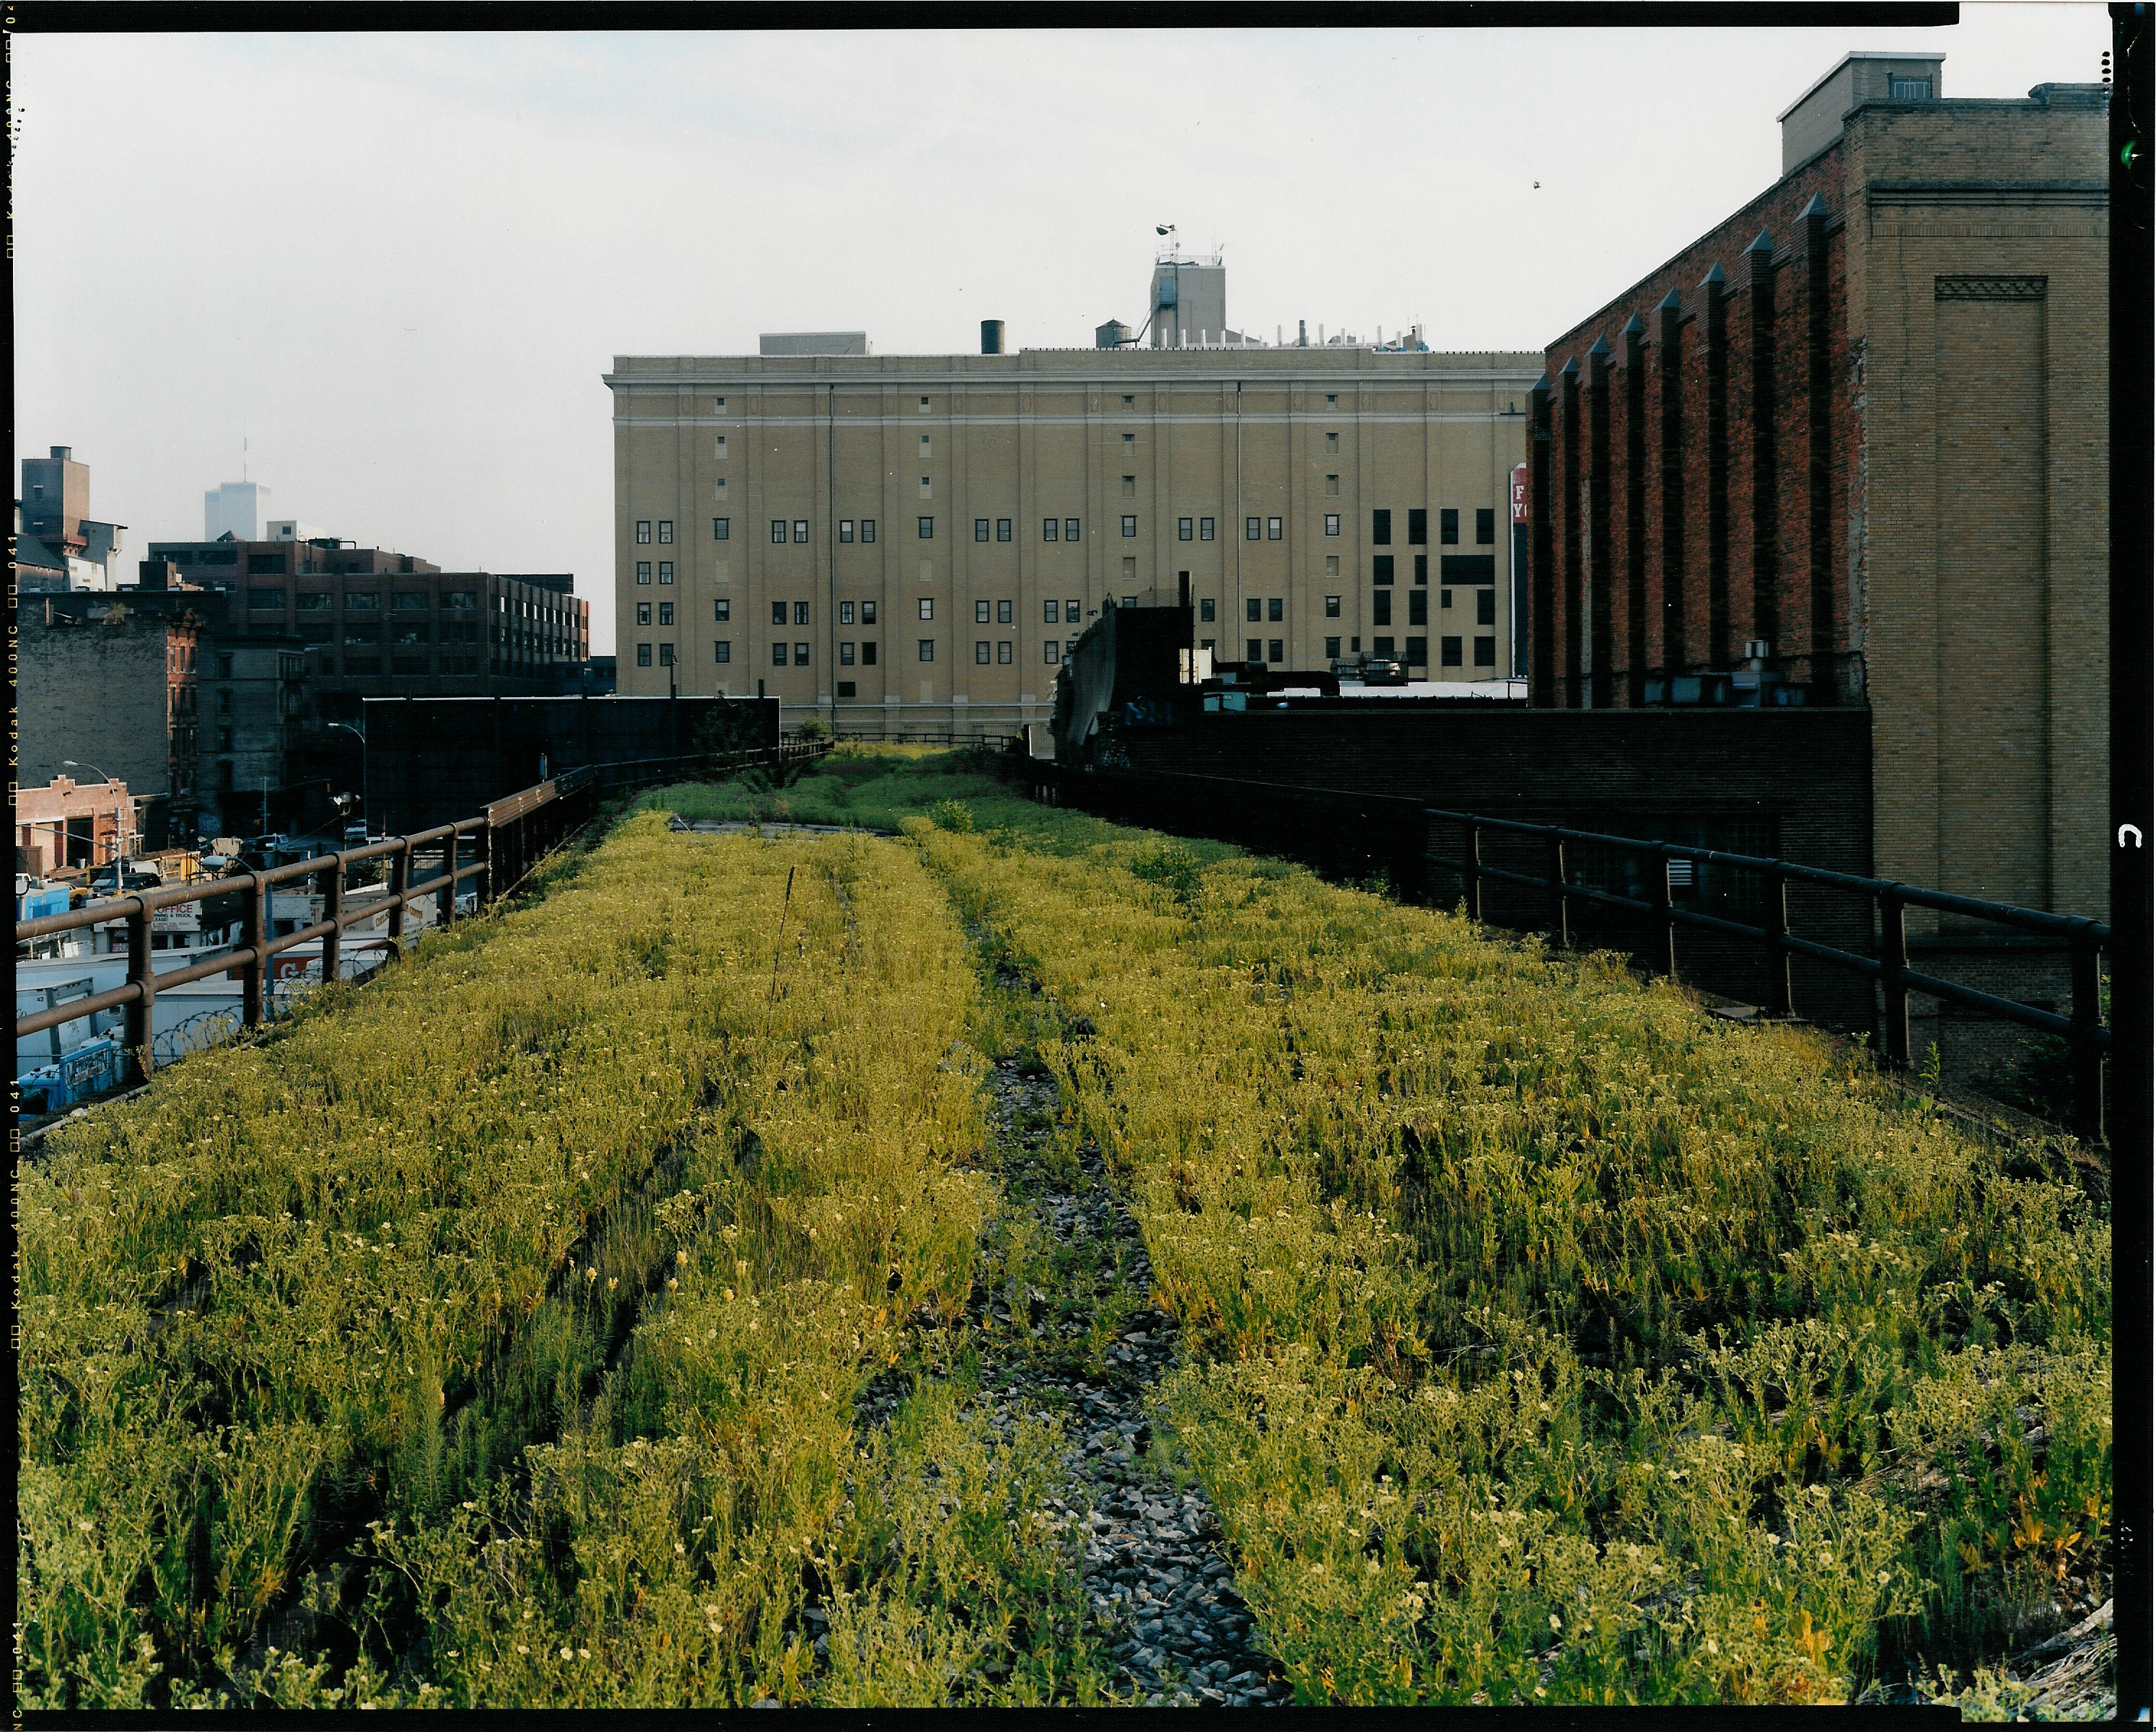 Walking the High Line with Joel Sternfeld | High Line Blog